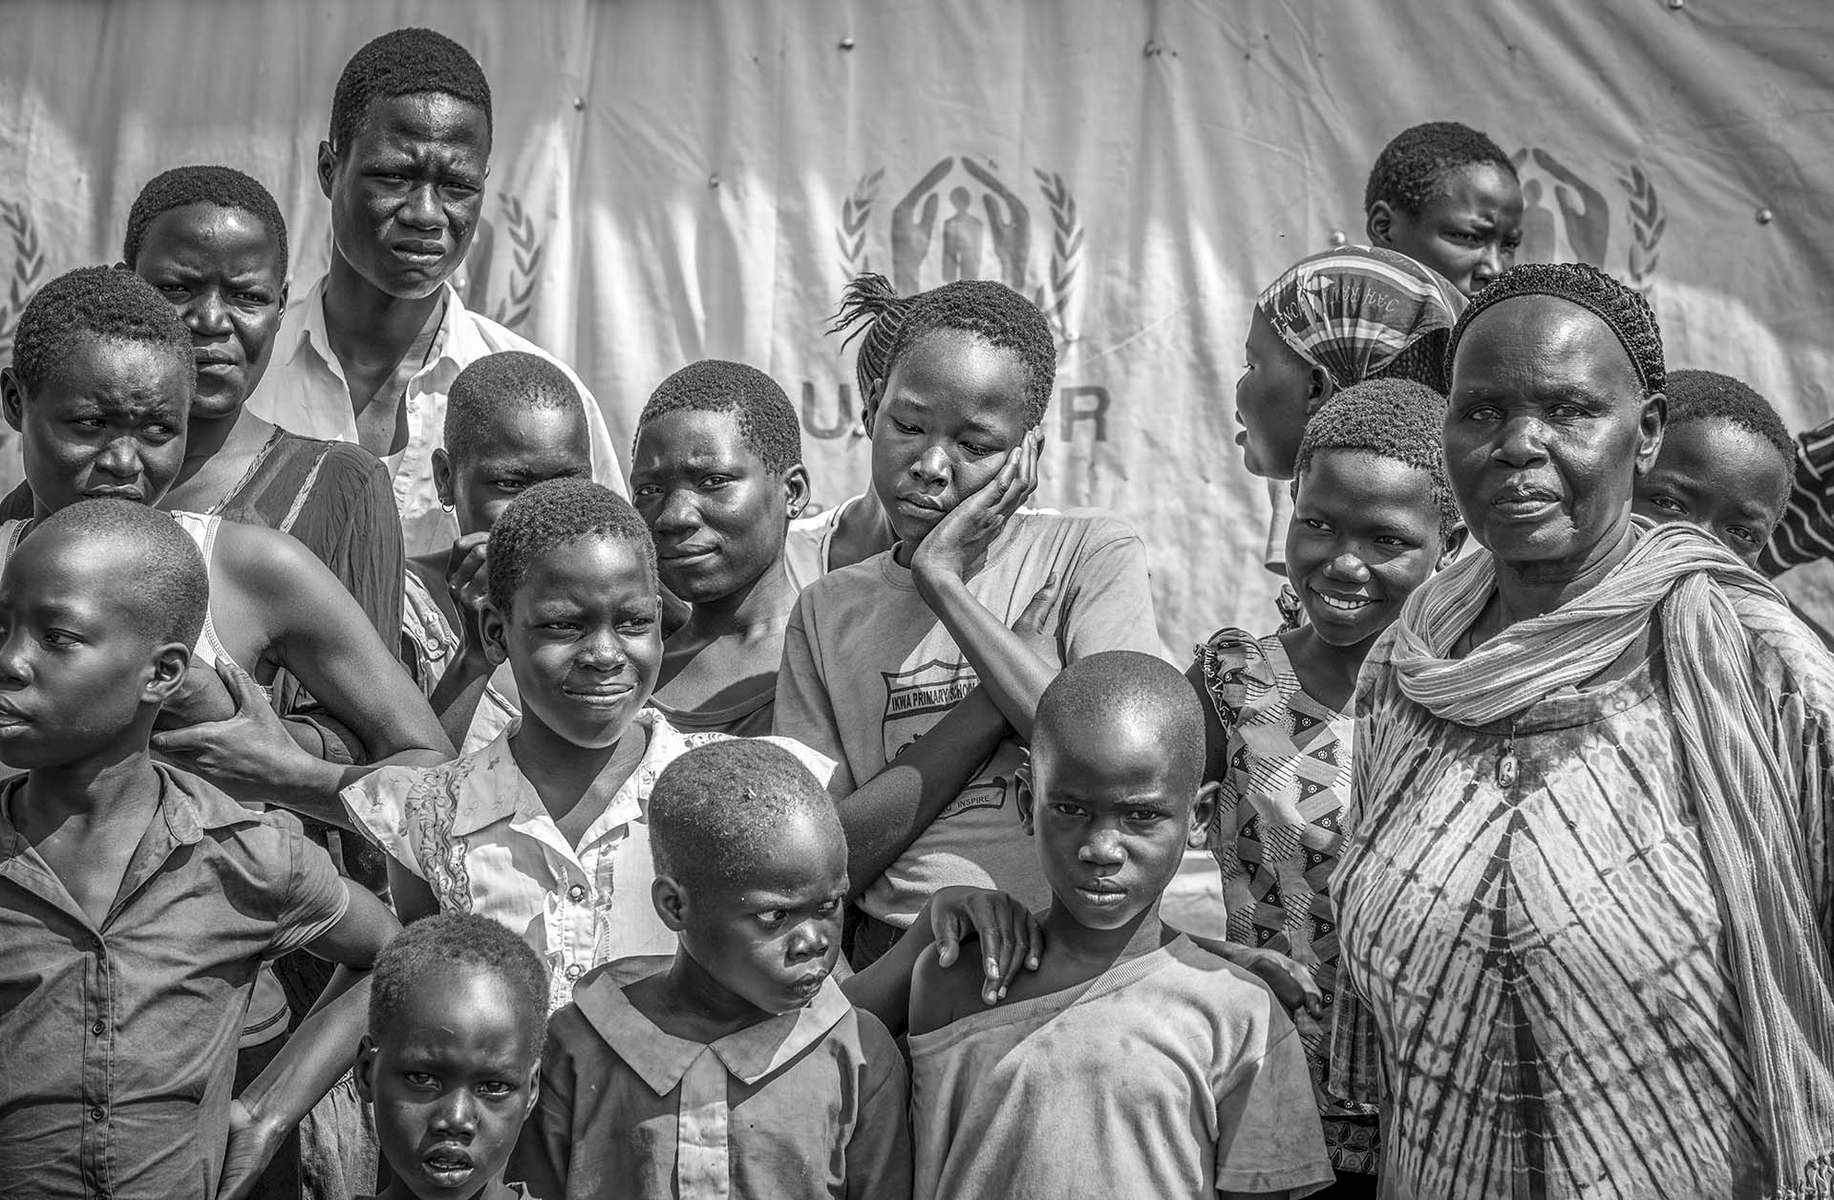 Refugee from South Sudan gather at Nyumanzi Transit Center in Adjumani district of Uganda August 29, 2016. © Jiro Ose